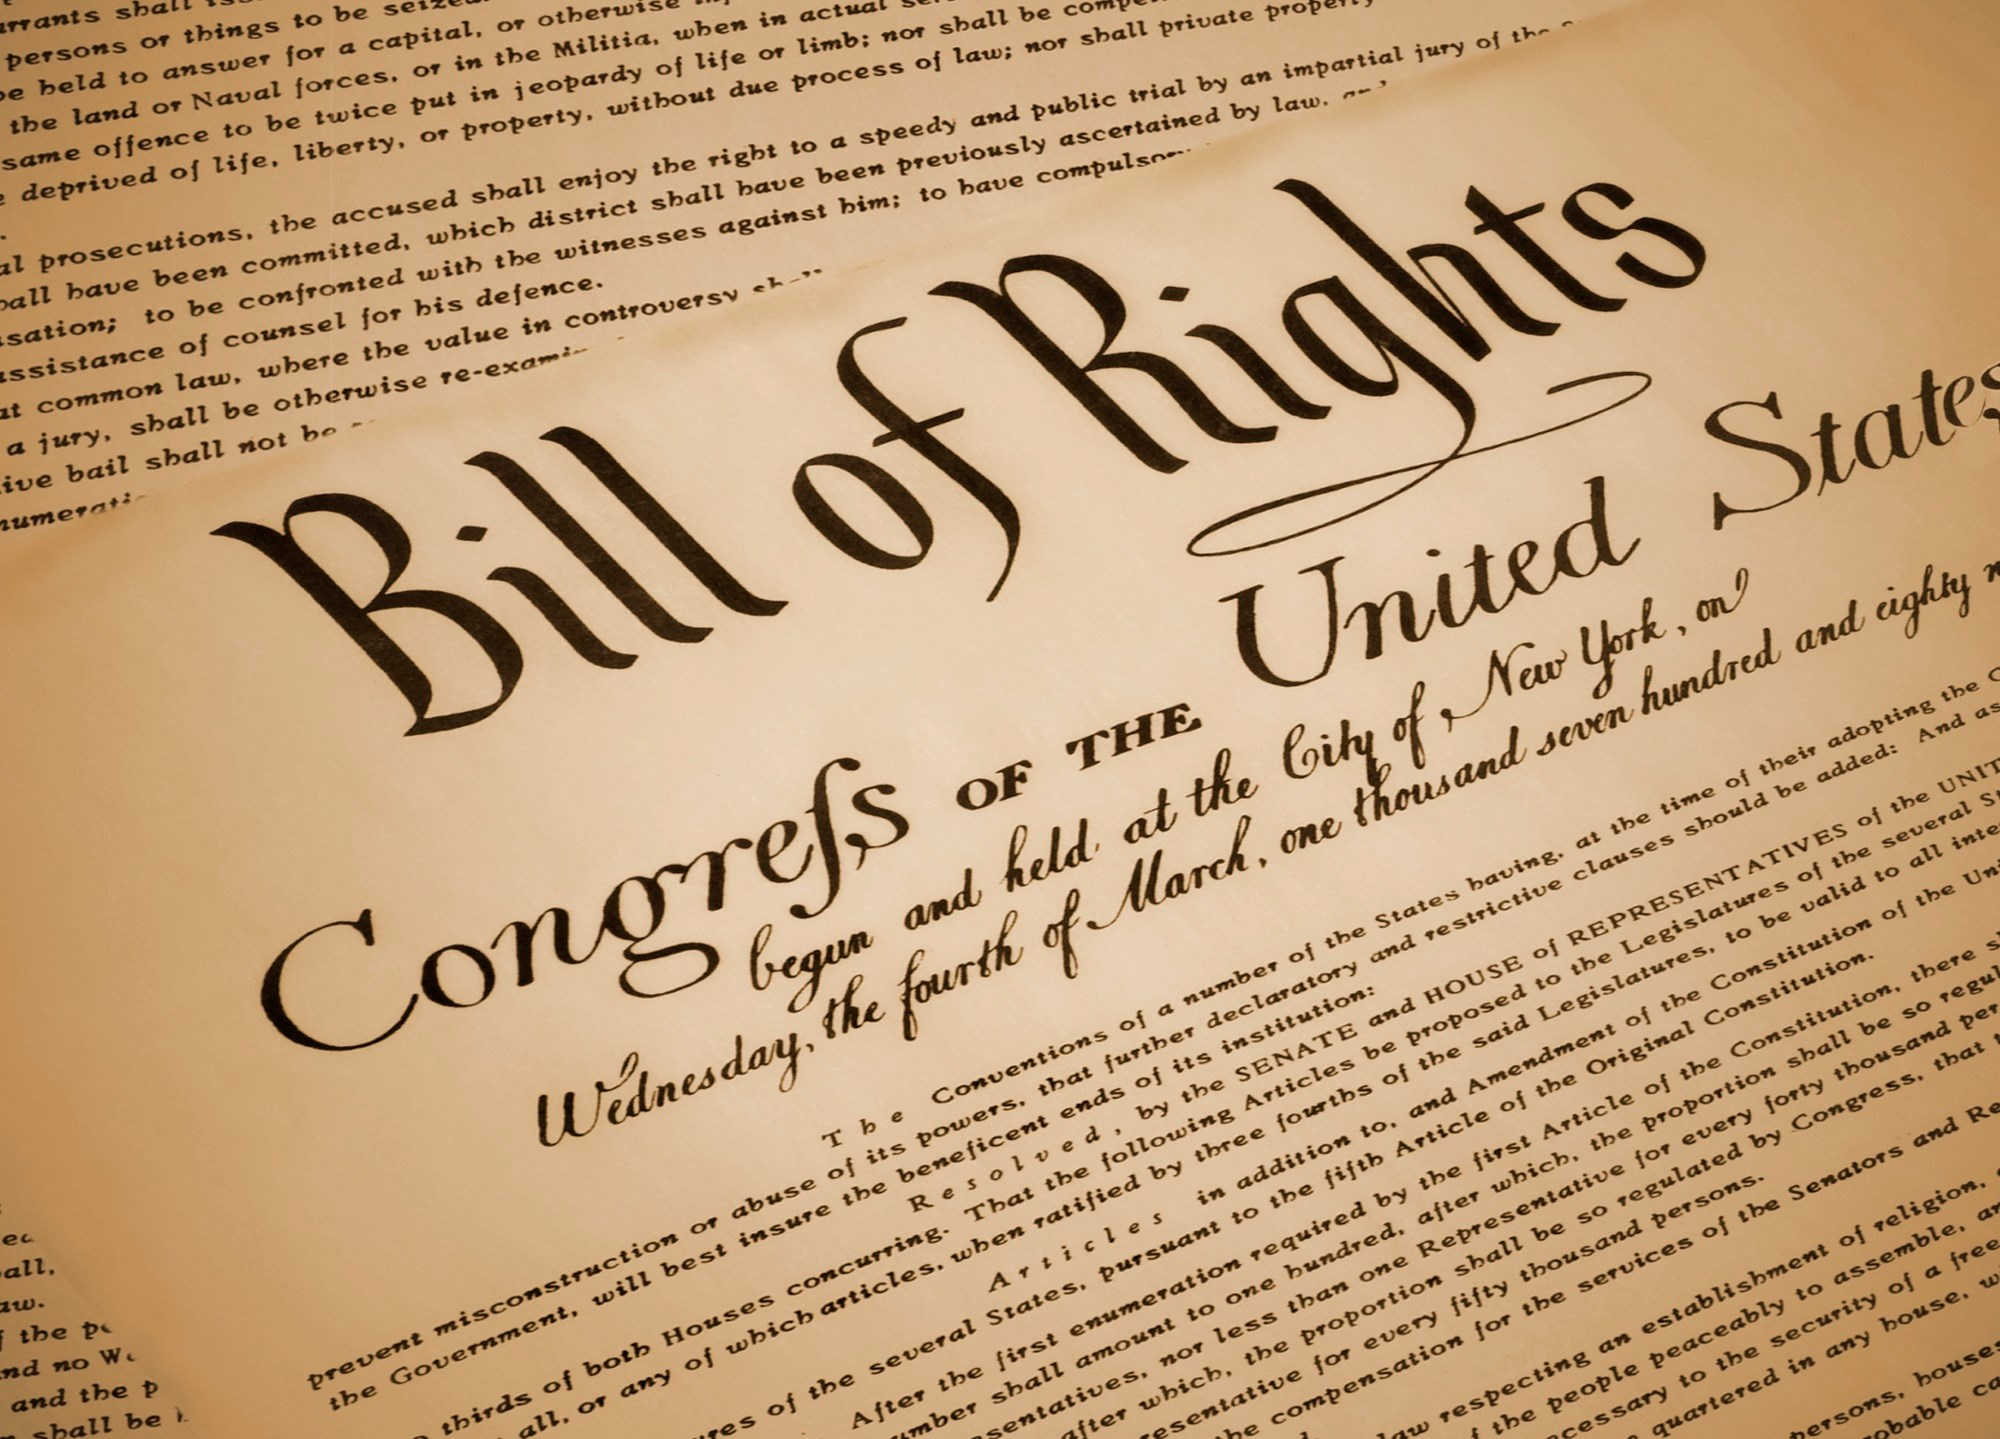 Debating the First Amendment: Is False Speech Constitutionally Protected?